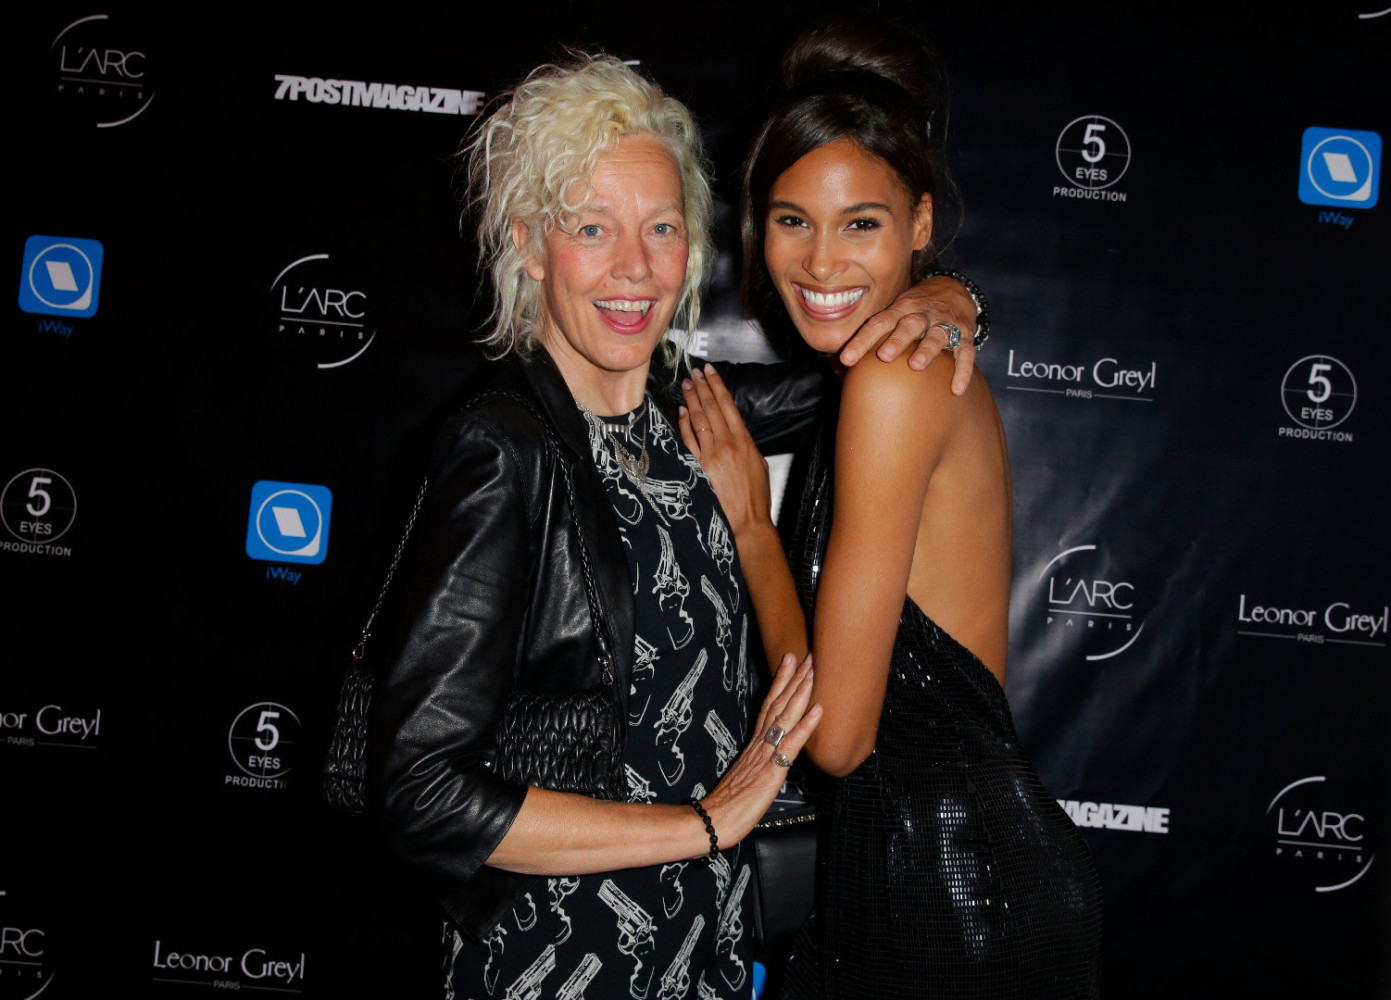 Cindy Bruna and Isis Bataglia @ 7post magazine party